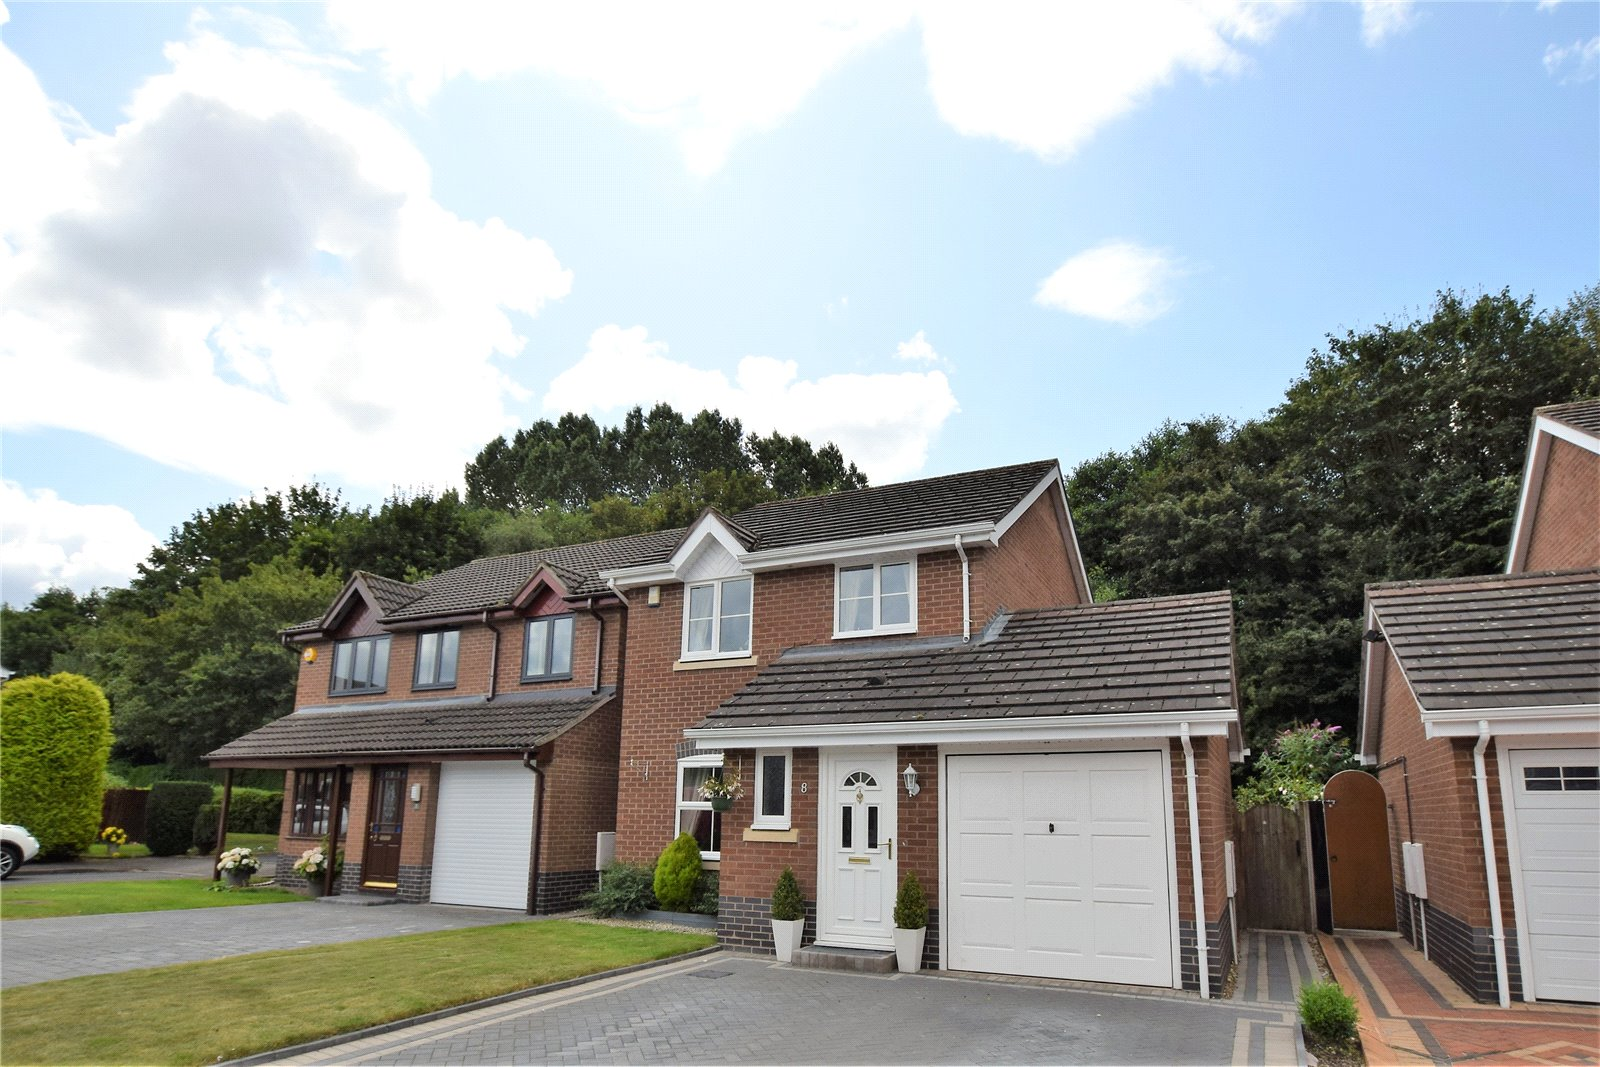 8 Woodpecker Close, Leegomery, Telford, TF1